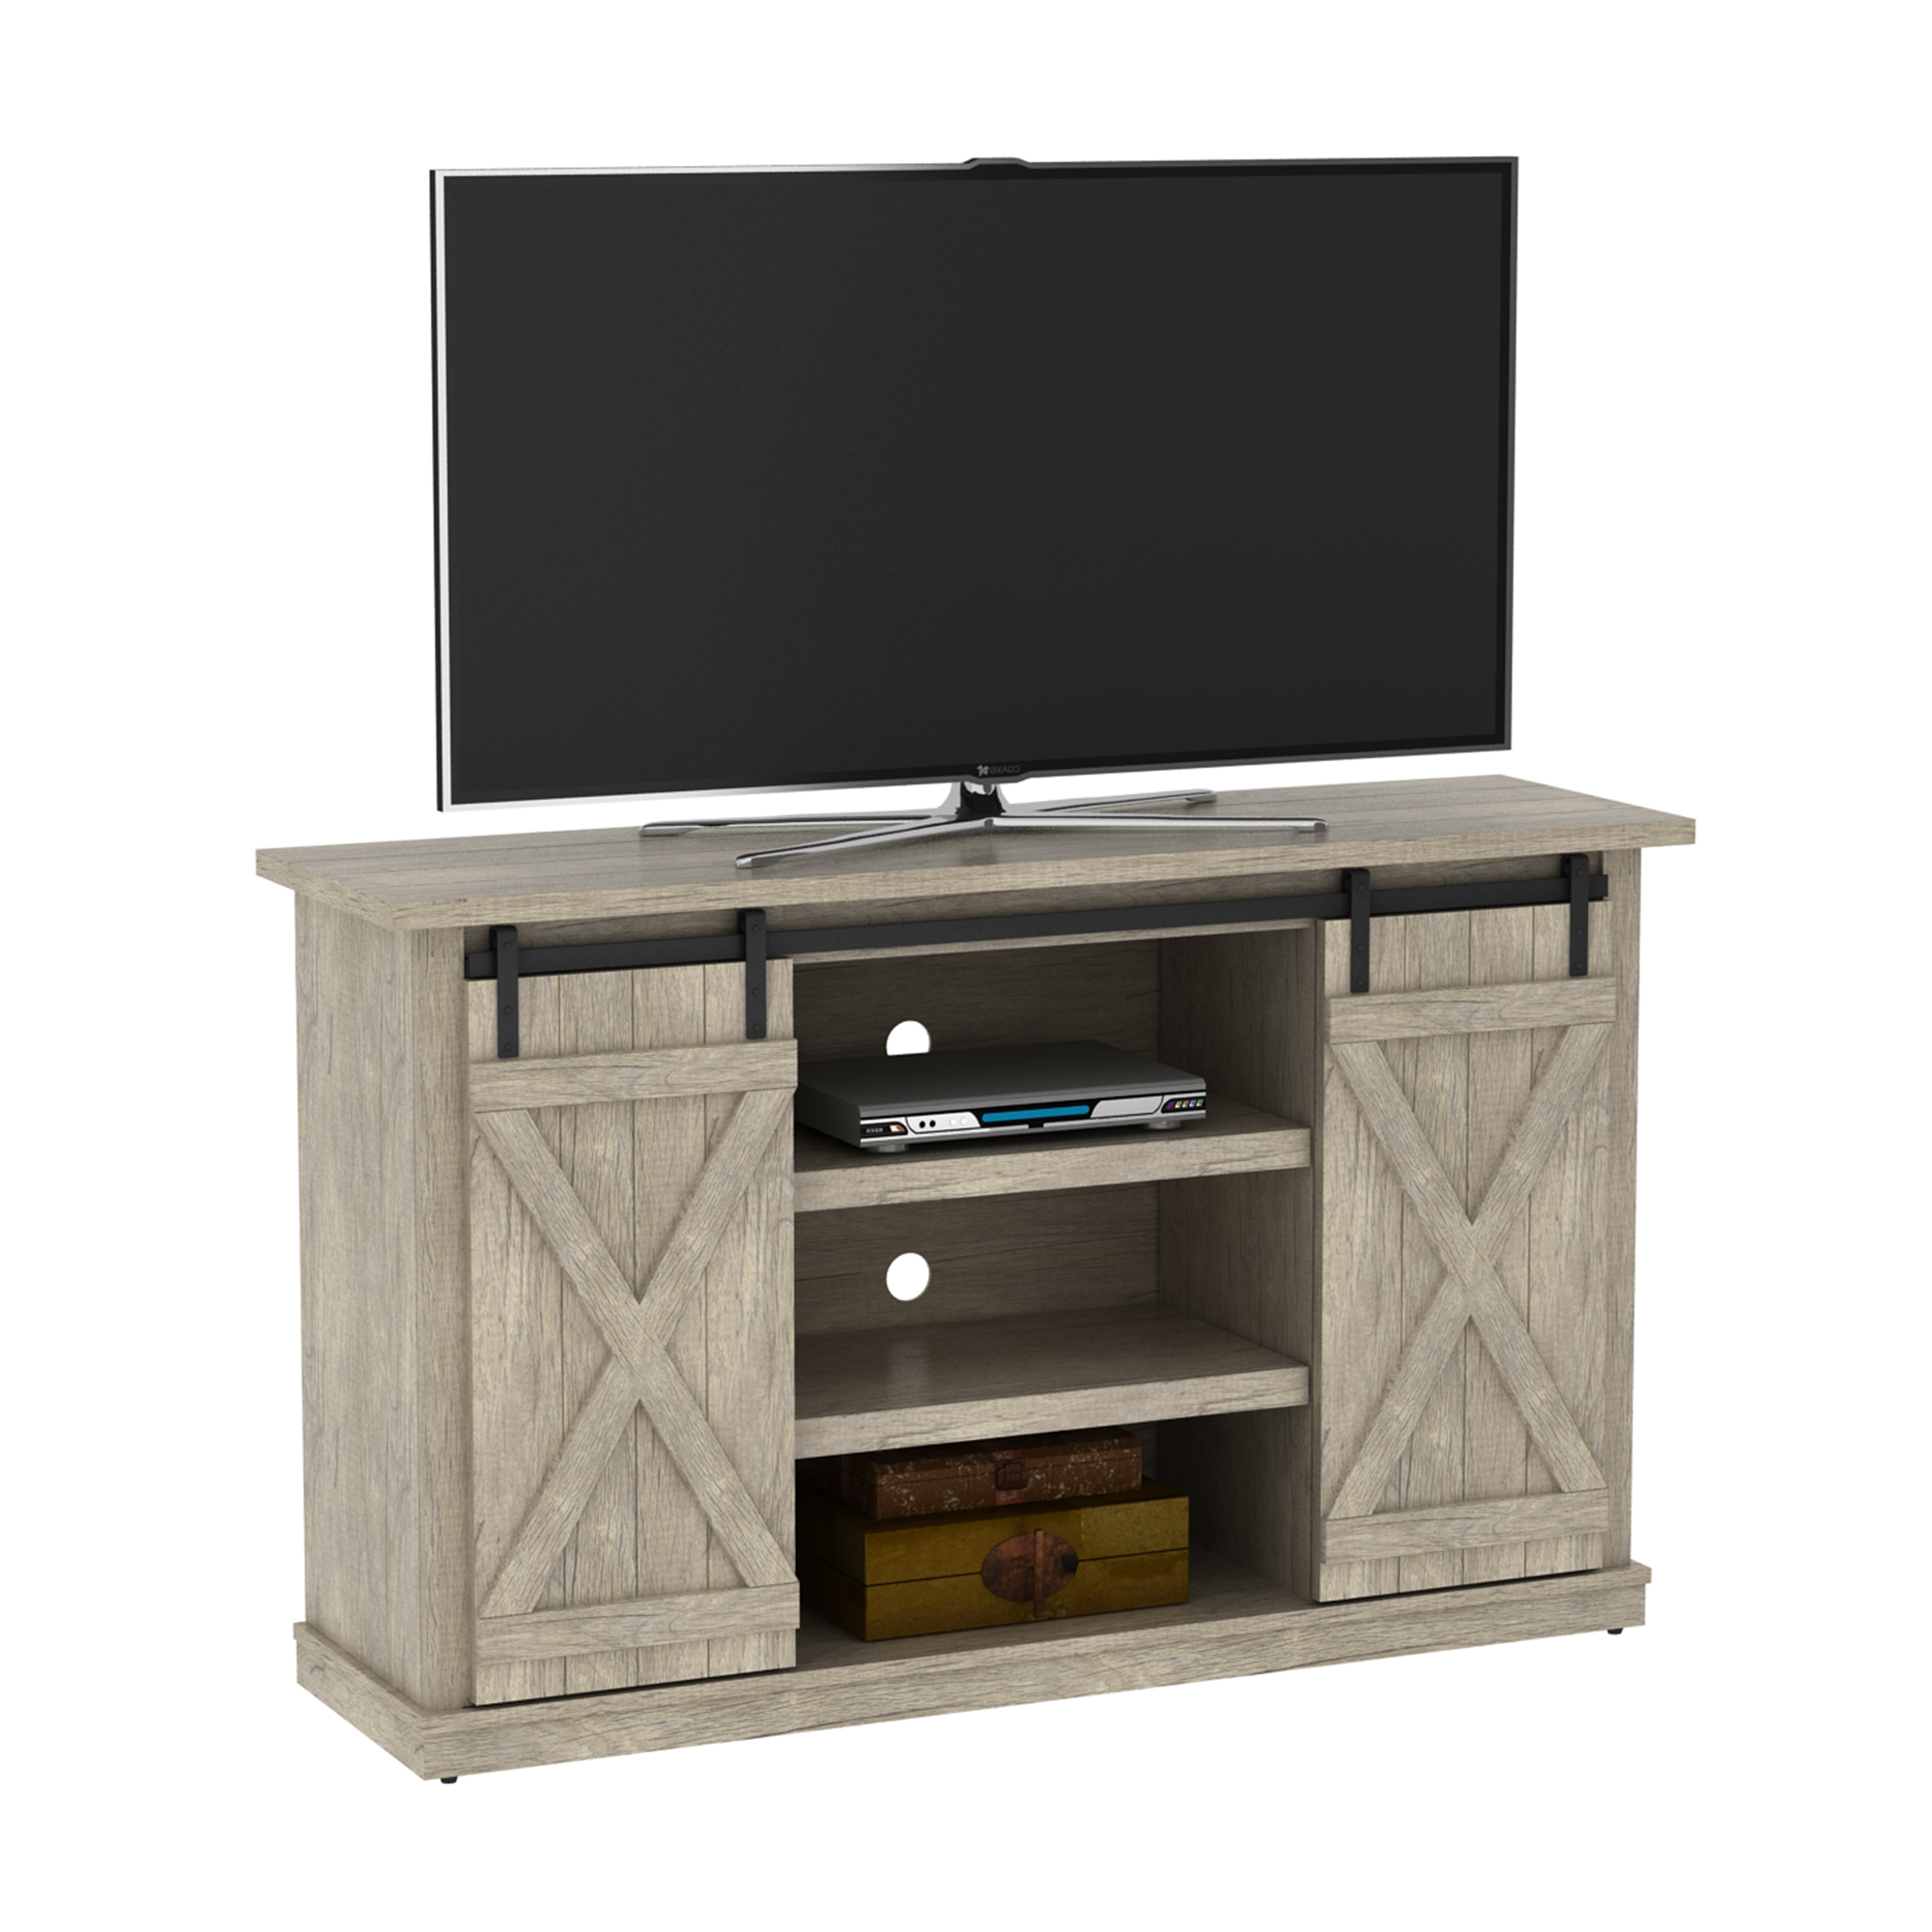 Cottonwood Tv Stand For Tvs Up To 60 Inches With Sliding For Farmhouse Sliding Barn Door Tv Stands For 70 Inch Flat Screen (View 7 of 20)